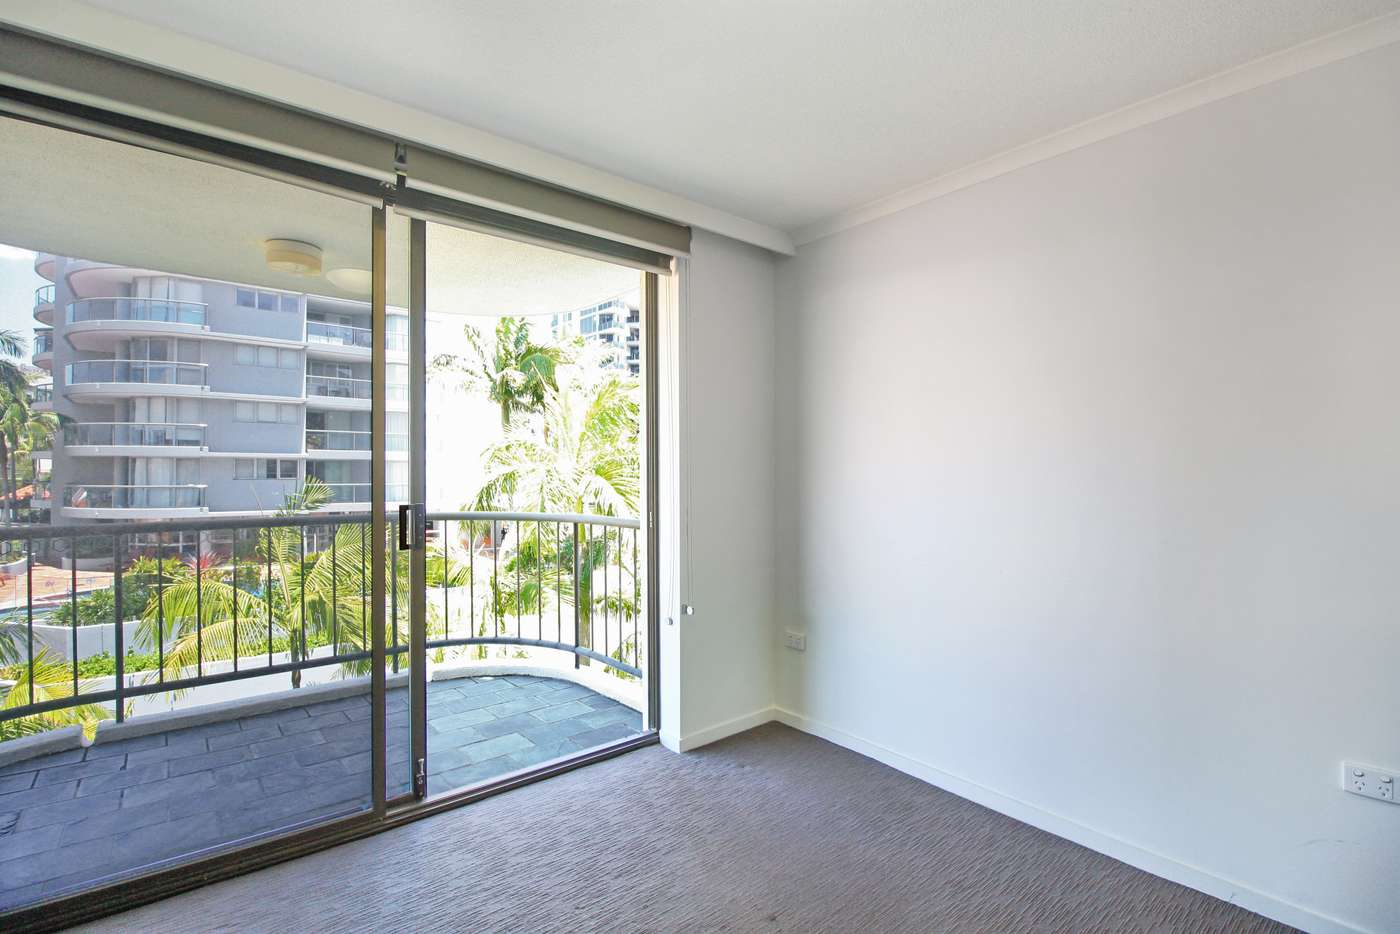 Seventh view of Homely apartment listing, 10/77 Cairns St, Kangaroo Point QLD 4169